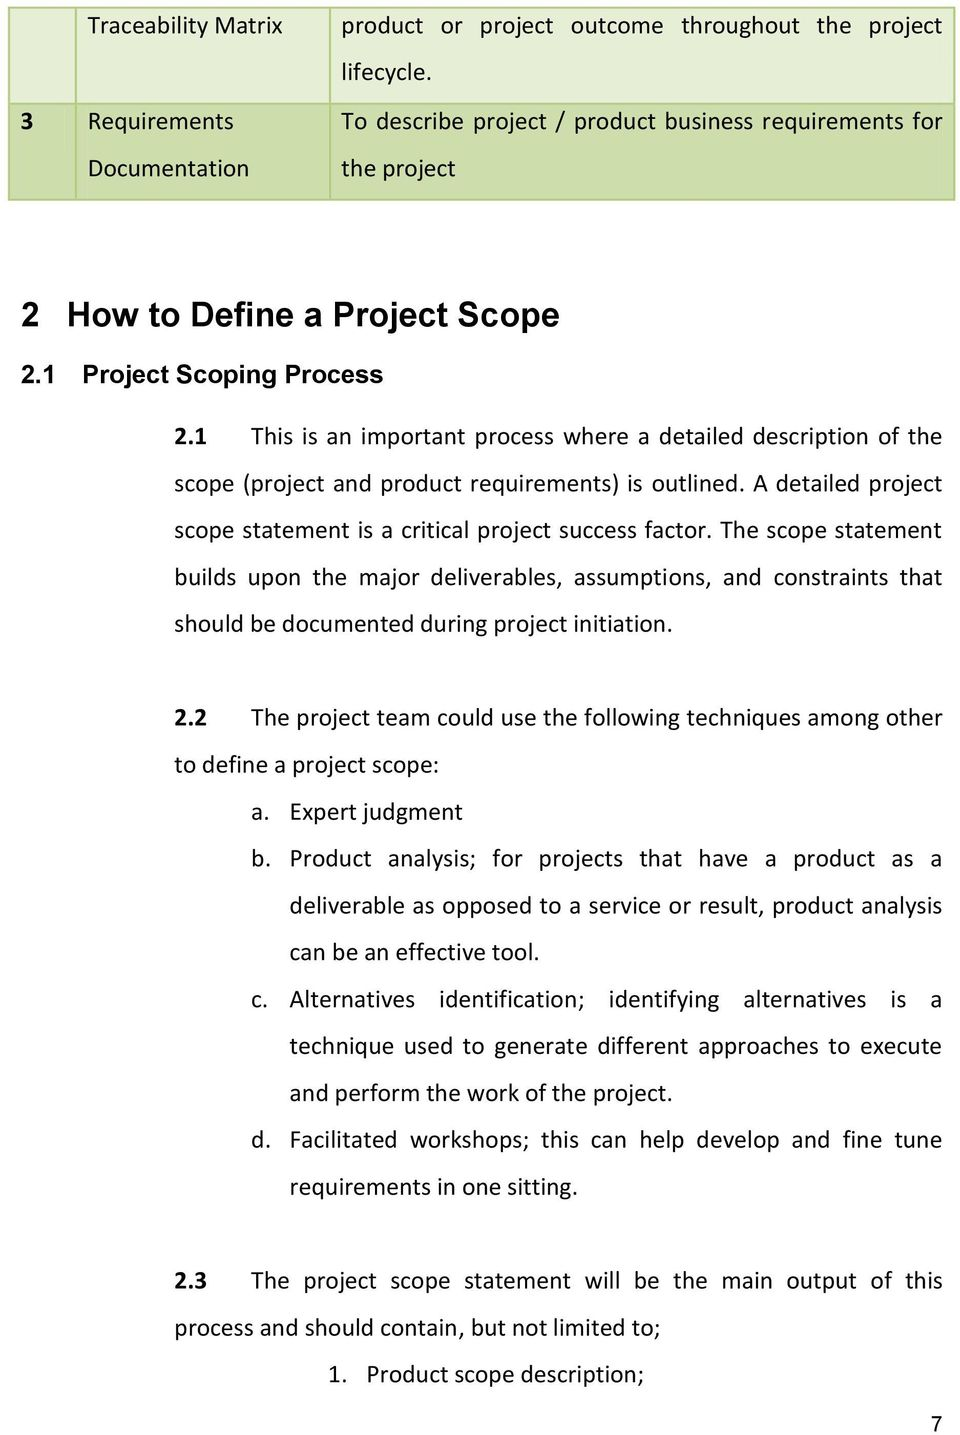 1 This is an important process where a detailed description of the scope (project and product requirements) is outlined. A detailed project scope statement is a critical project success factor.